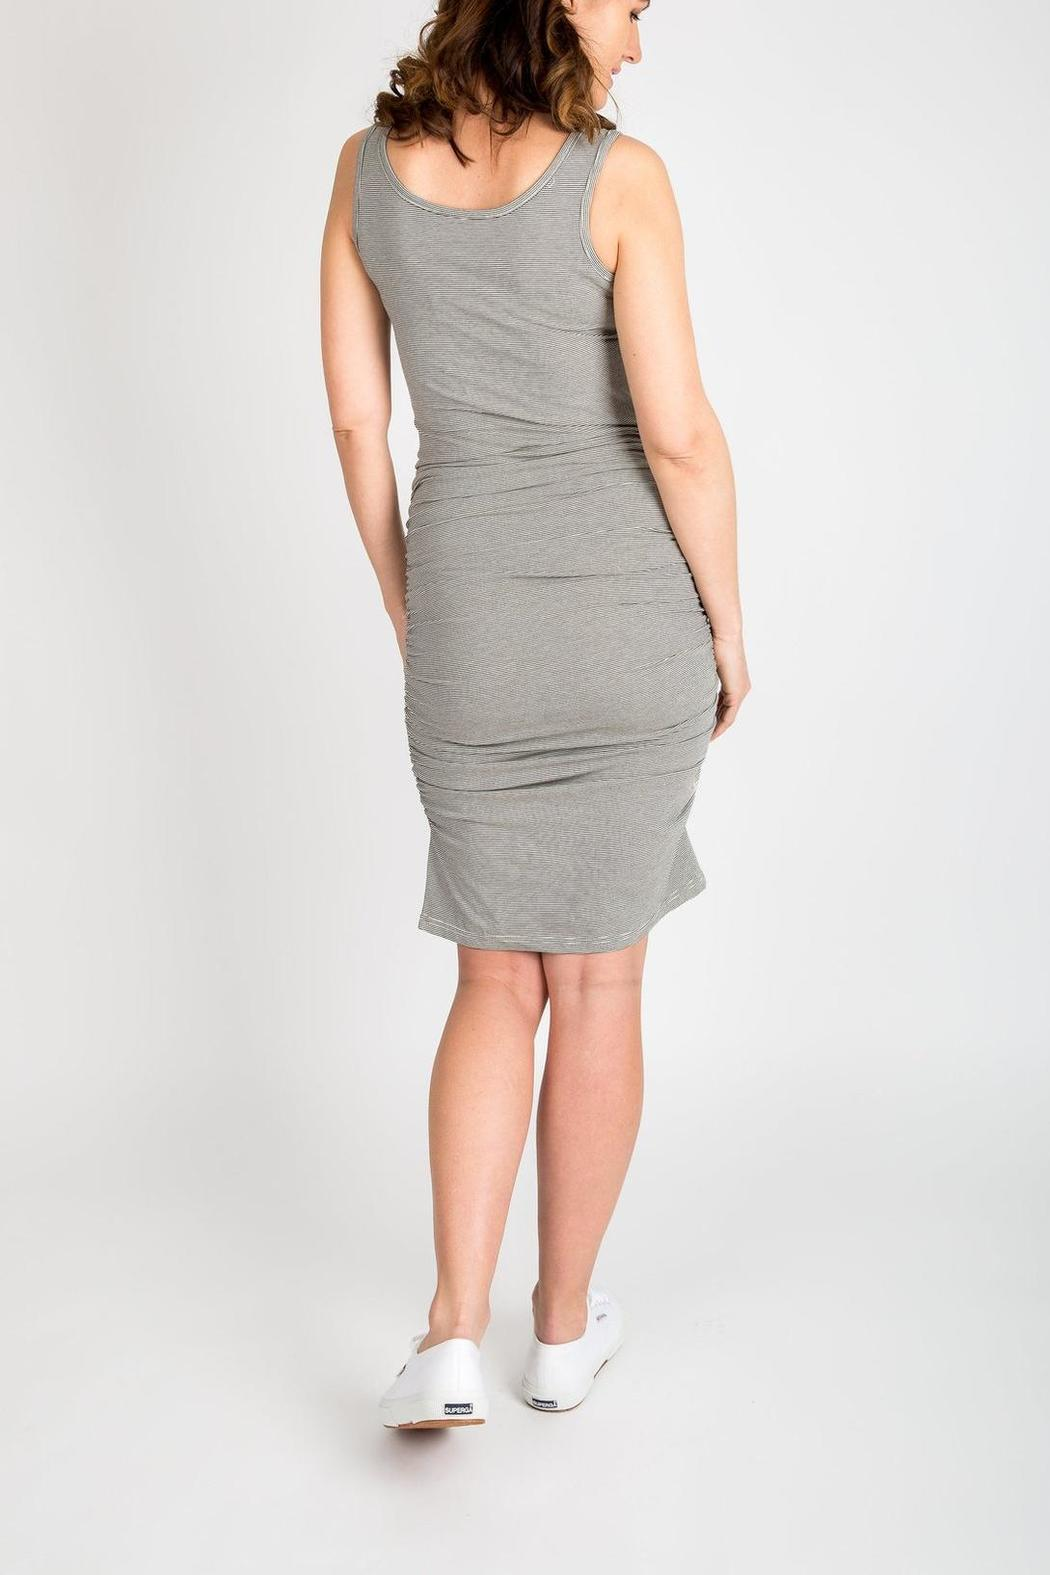 NOM Maternity Snap Tank Dress - Side Cropped Image